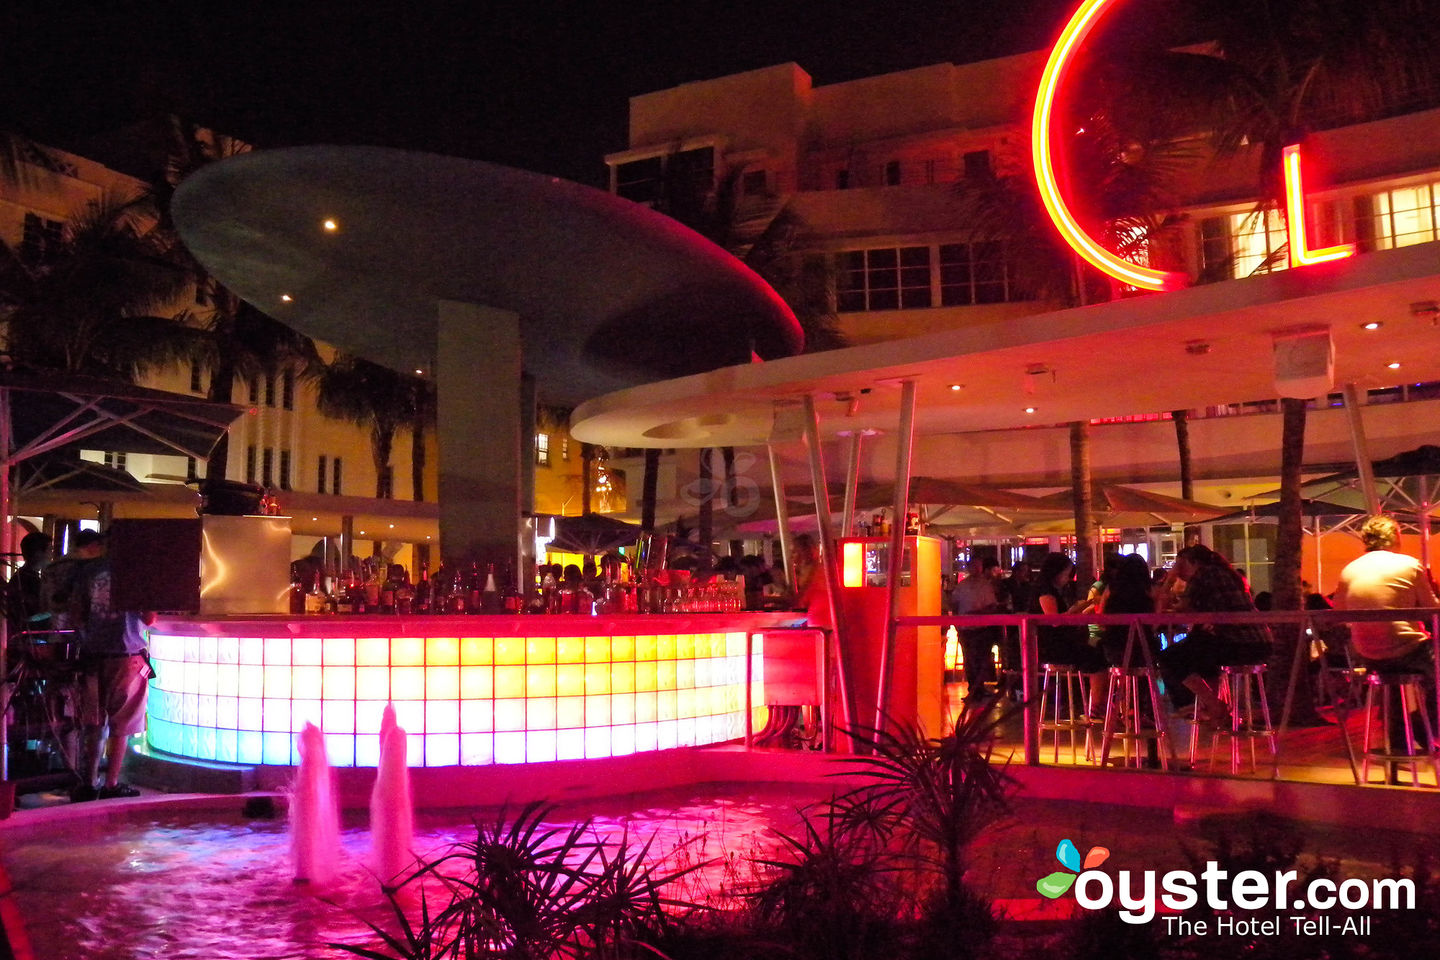 Pool Bar at Clevelander South Beach Hotel, Miami/Oyster